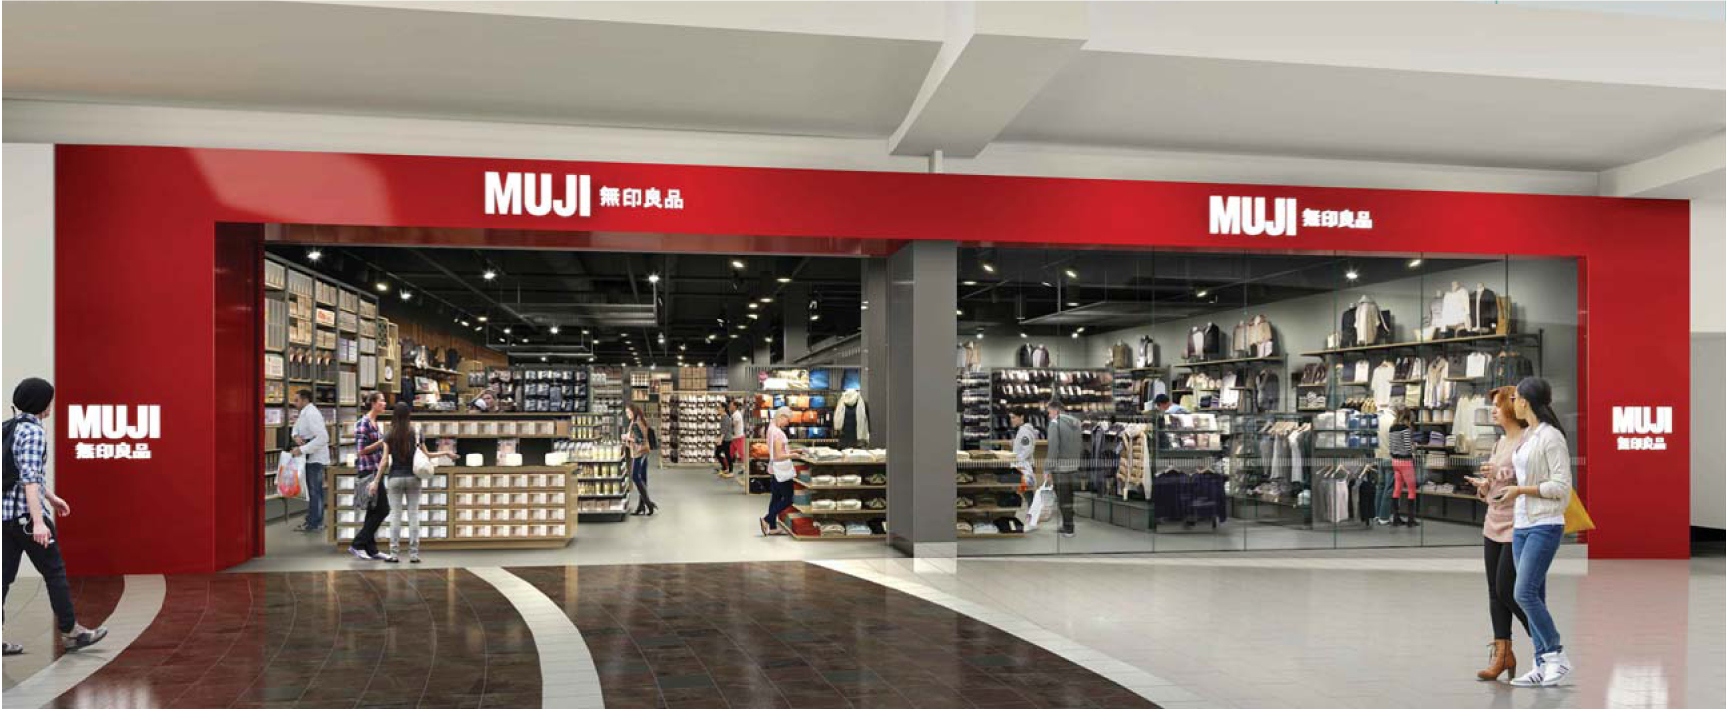 muji garden state plaza muji usa. Black Bedroom Furniture Sets. Home Design Ideas